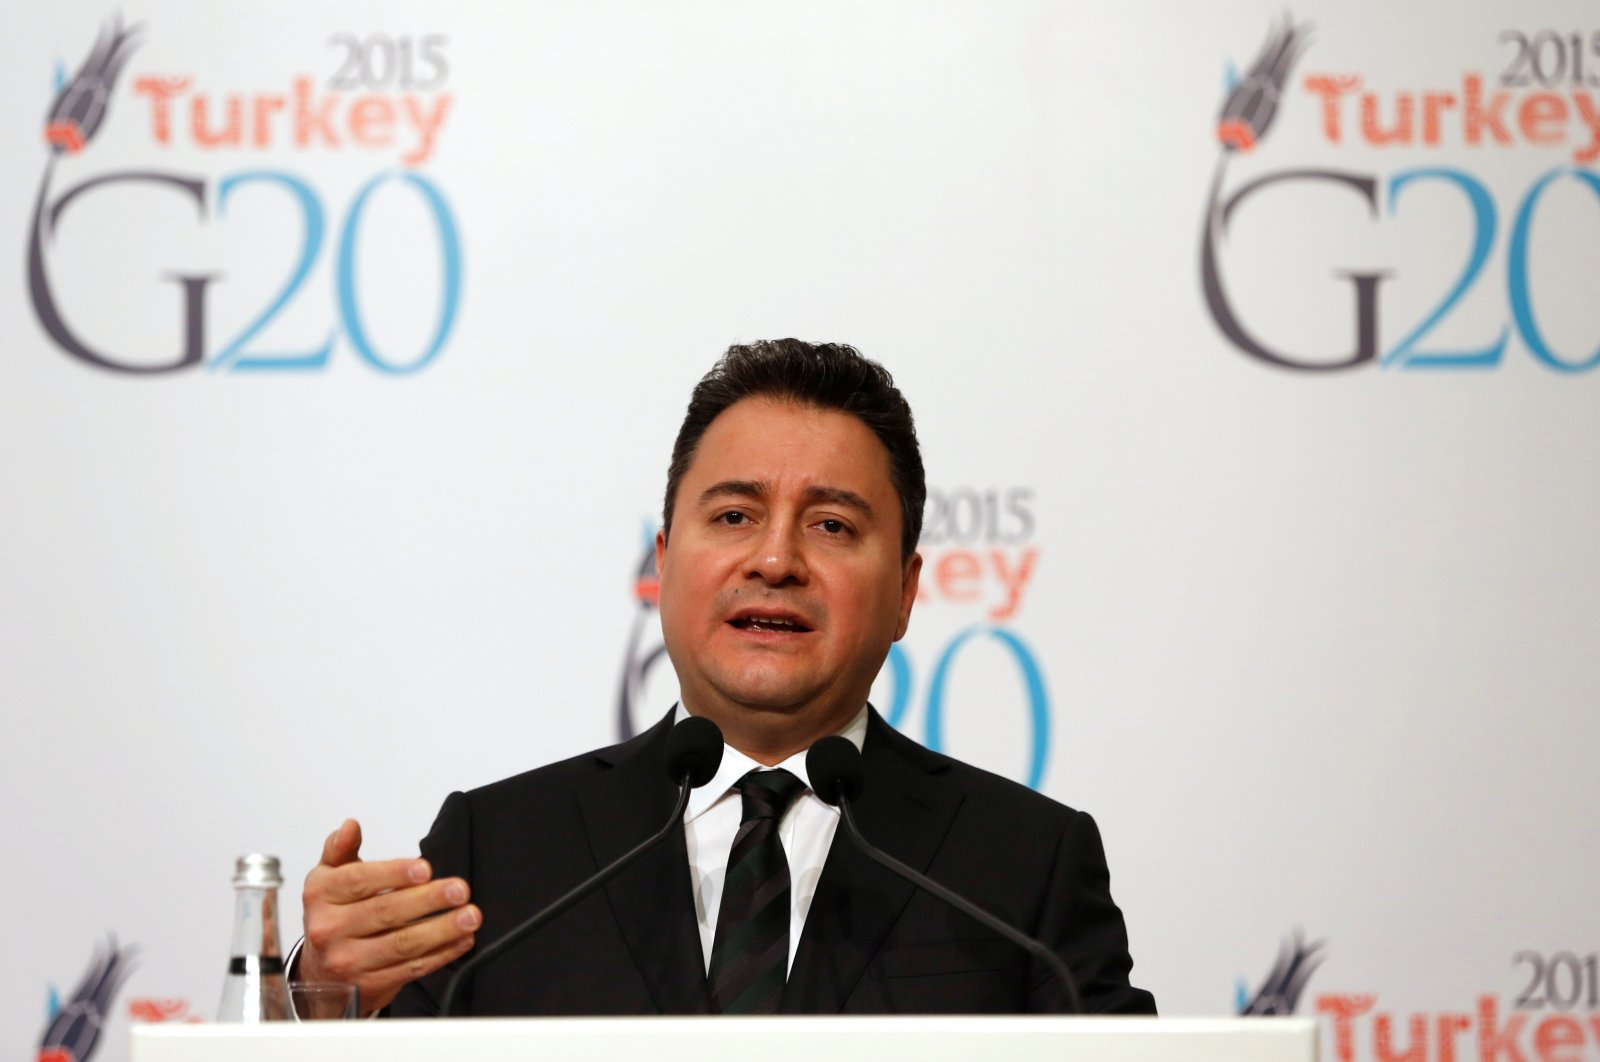 Former Deputy Prime Minister Ali Babacan speaks during a news conference at the G20 meeting of finance ministers and central bank governors in Istanbul, Feb. 9, 2015. (REUTERS Photo)